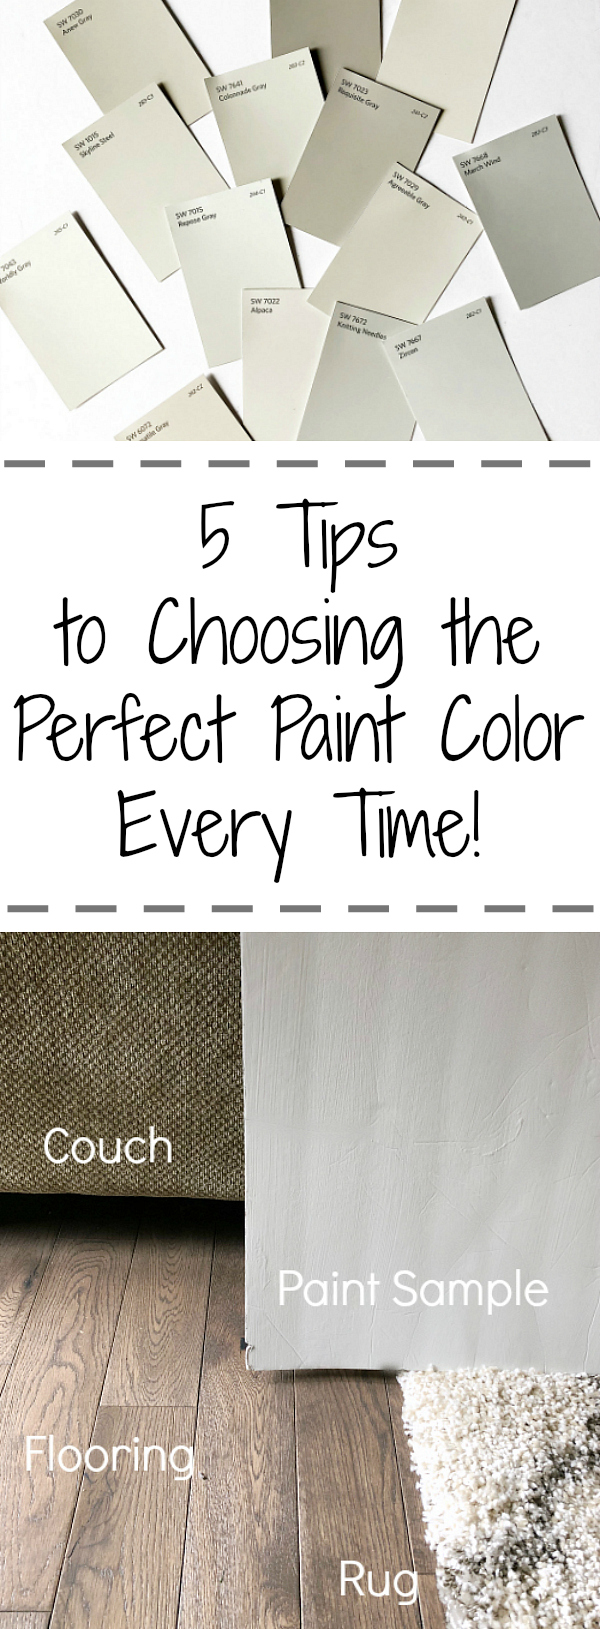 Choosing Paint Colors Can Be SO Tough These Tips Are Awesome And Most Of